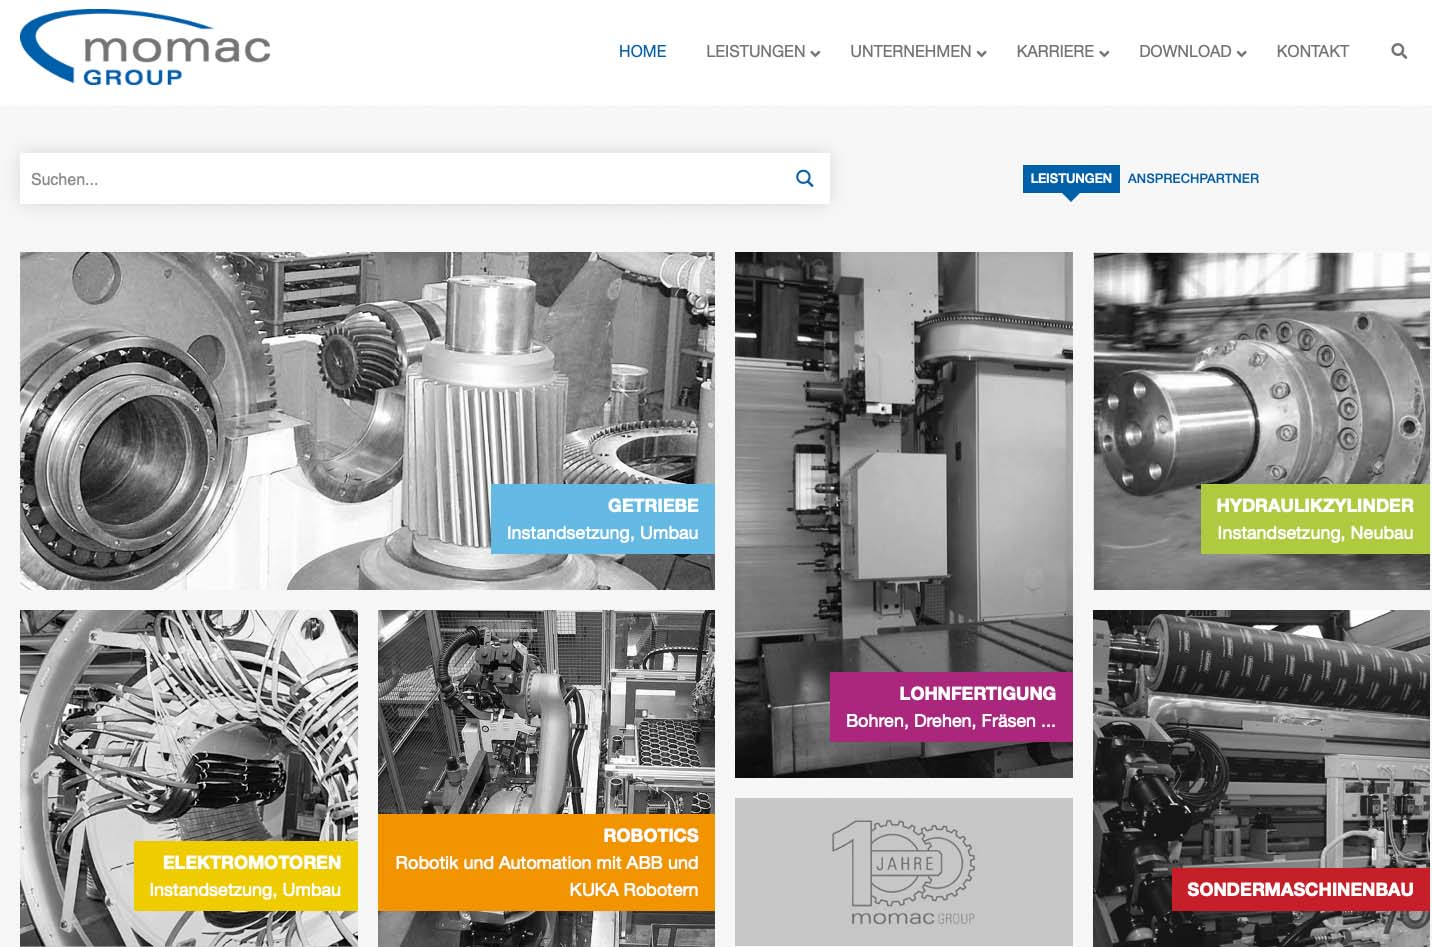 momac Group neue Homepage online